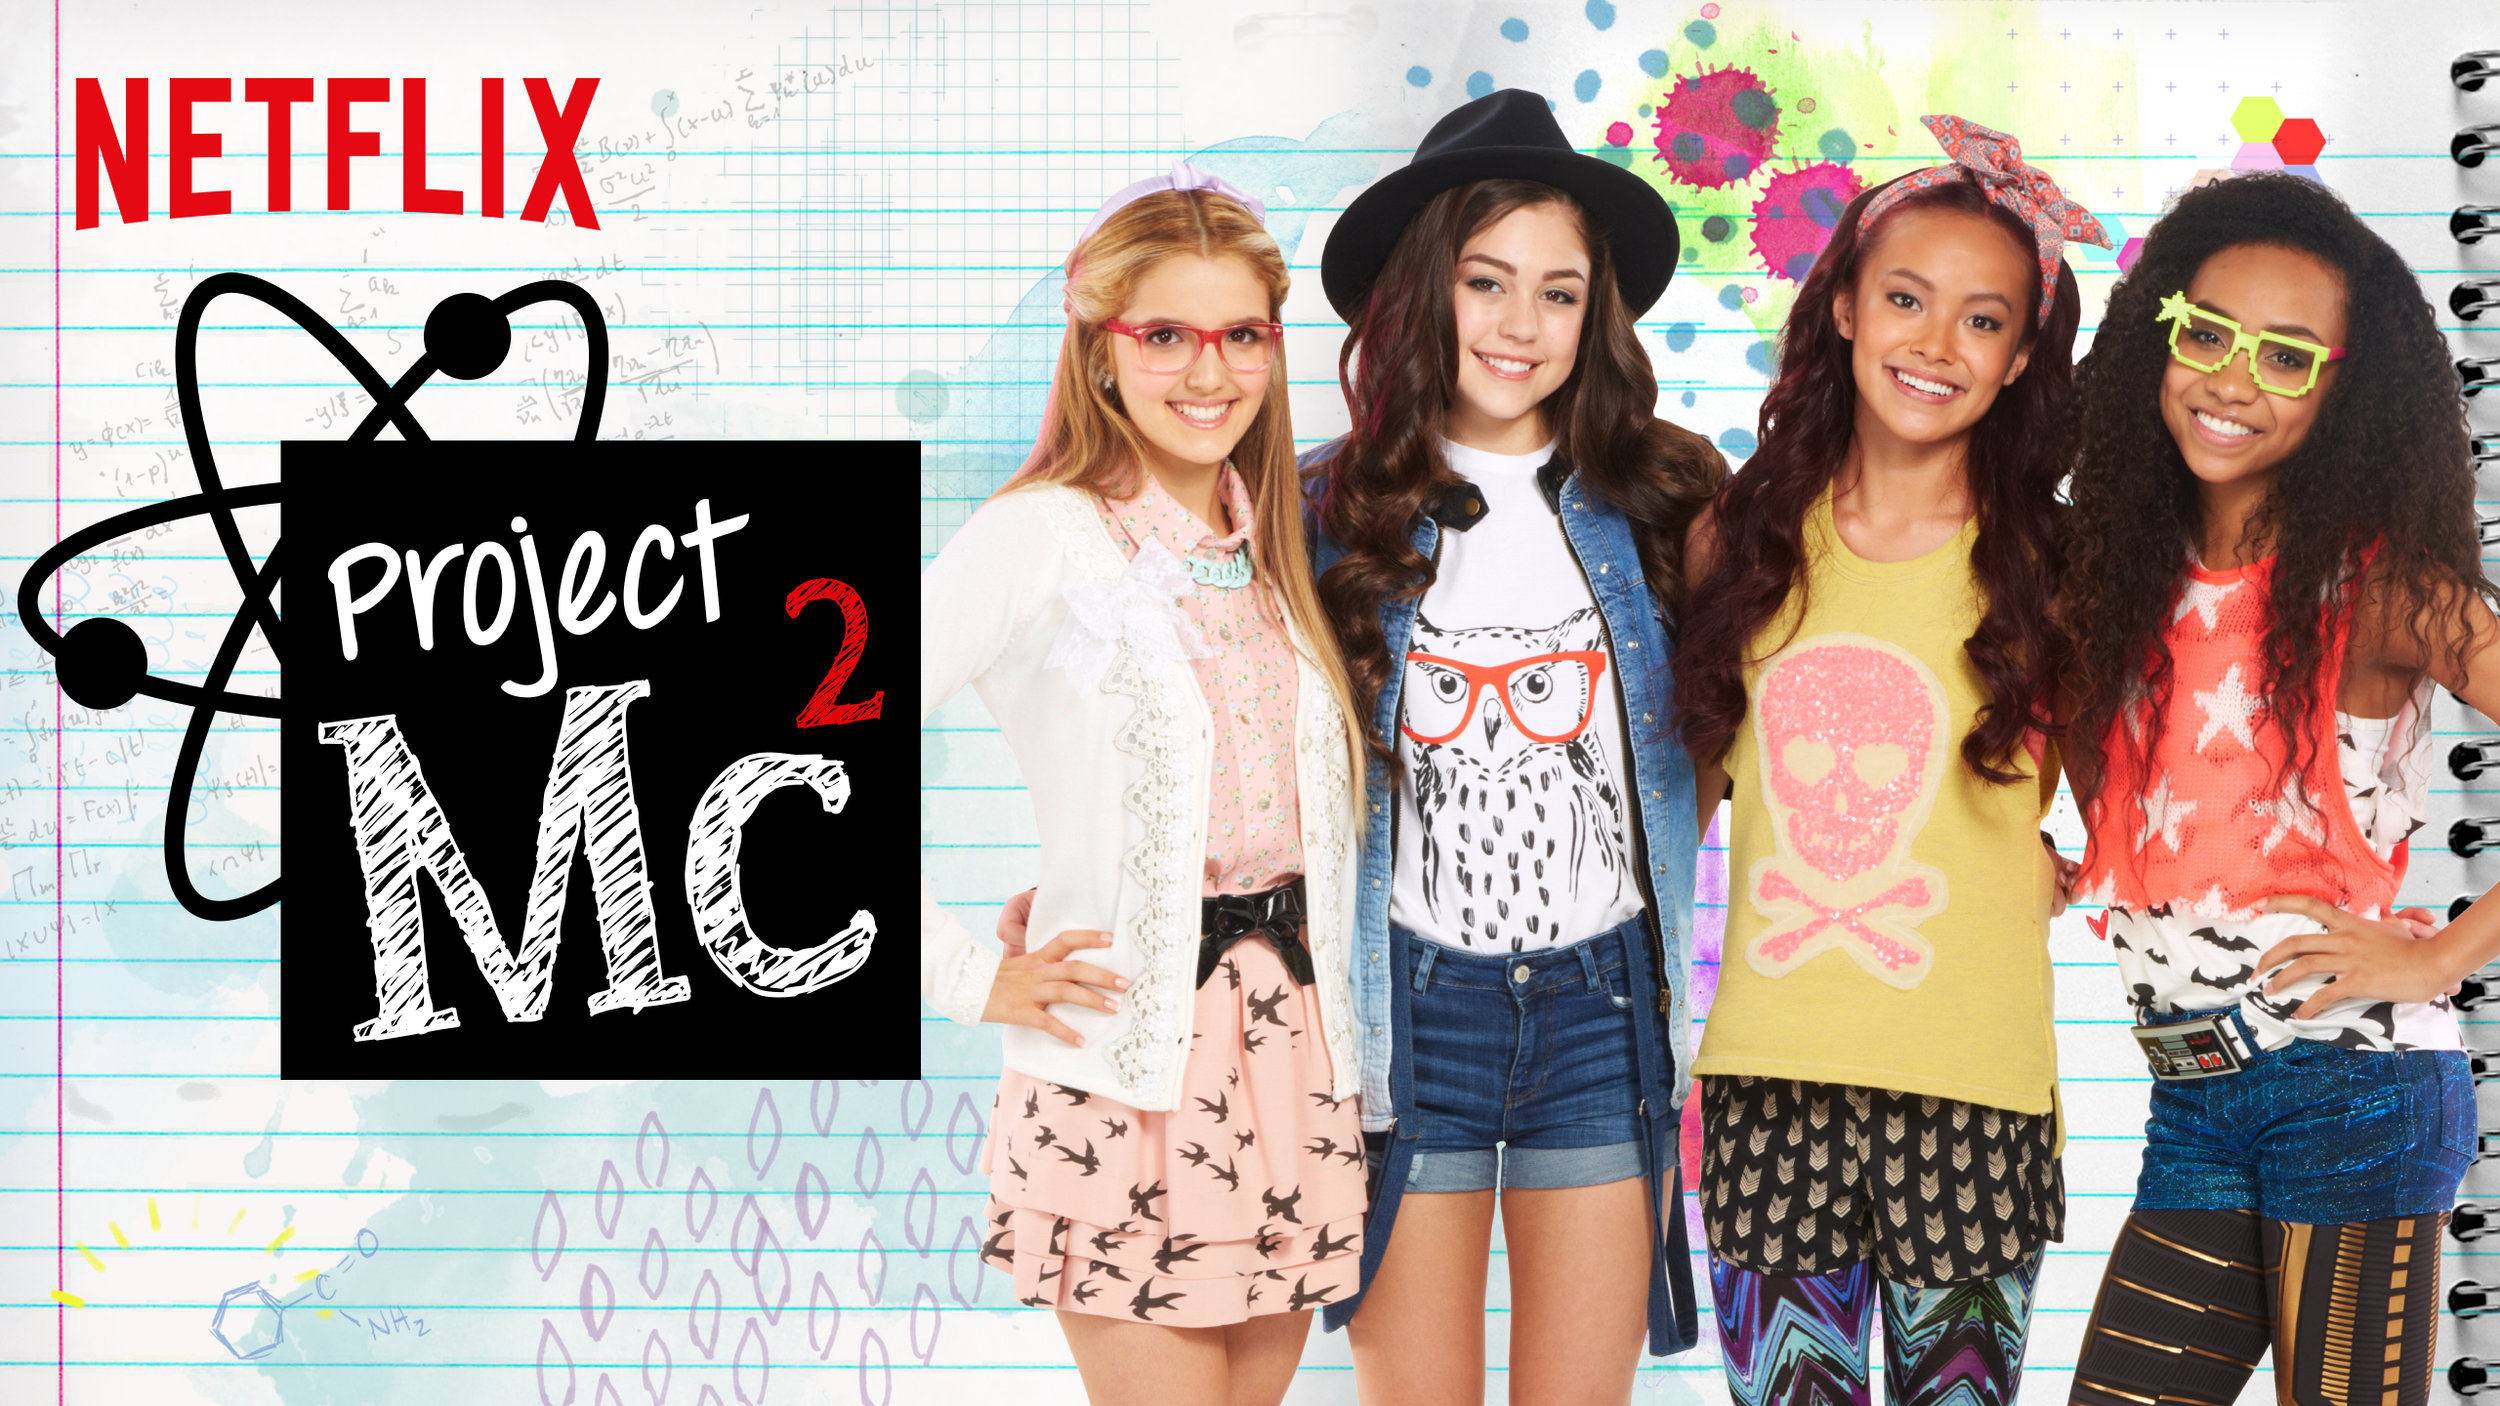 Netflix-Original-Project-Mc2-Horizontal-Display-Art-FINAL-HiRes.jpg